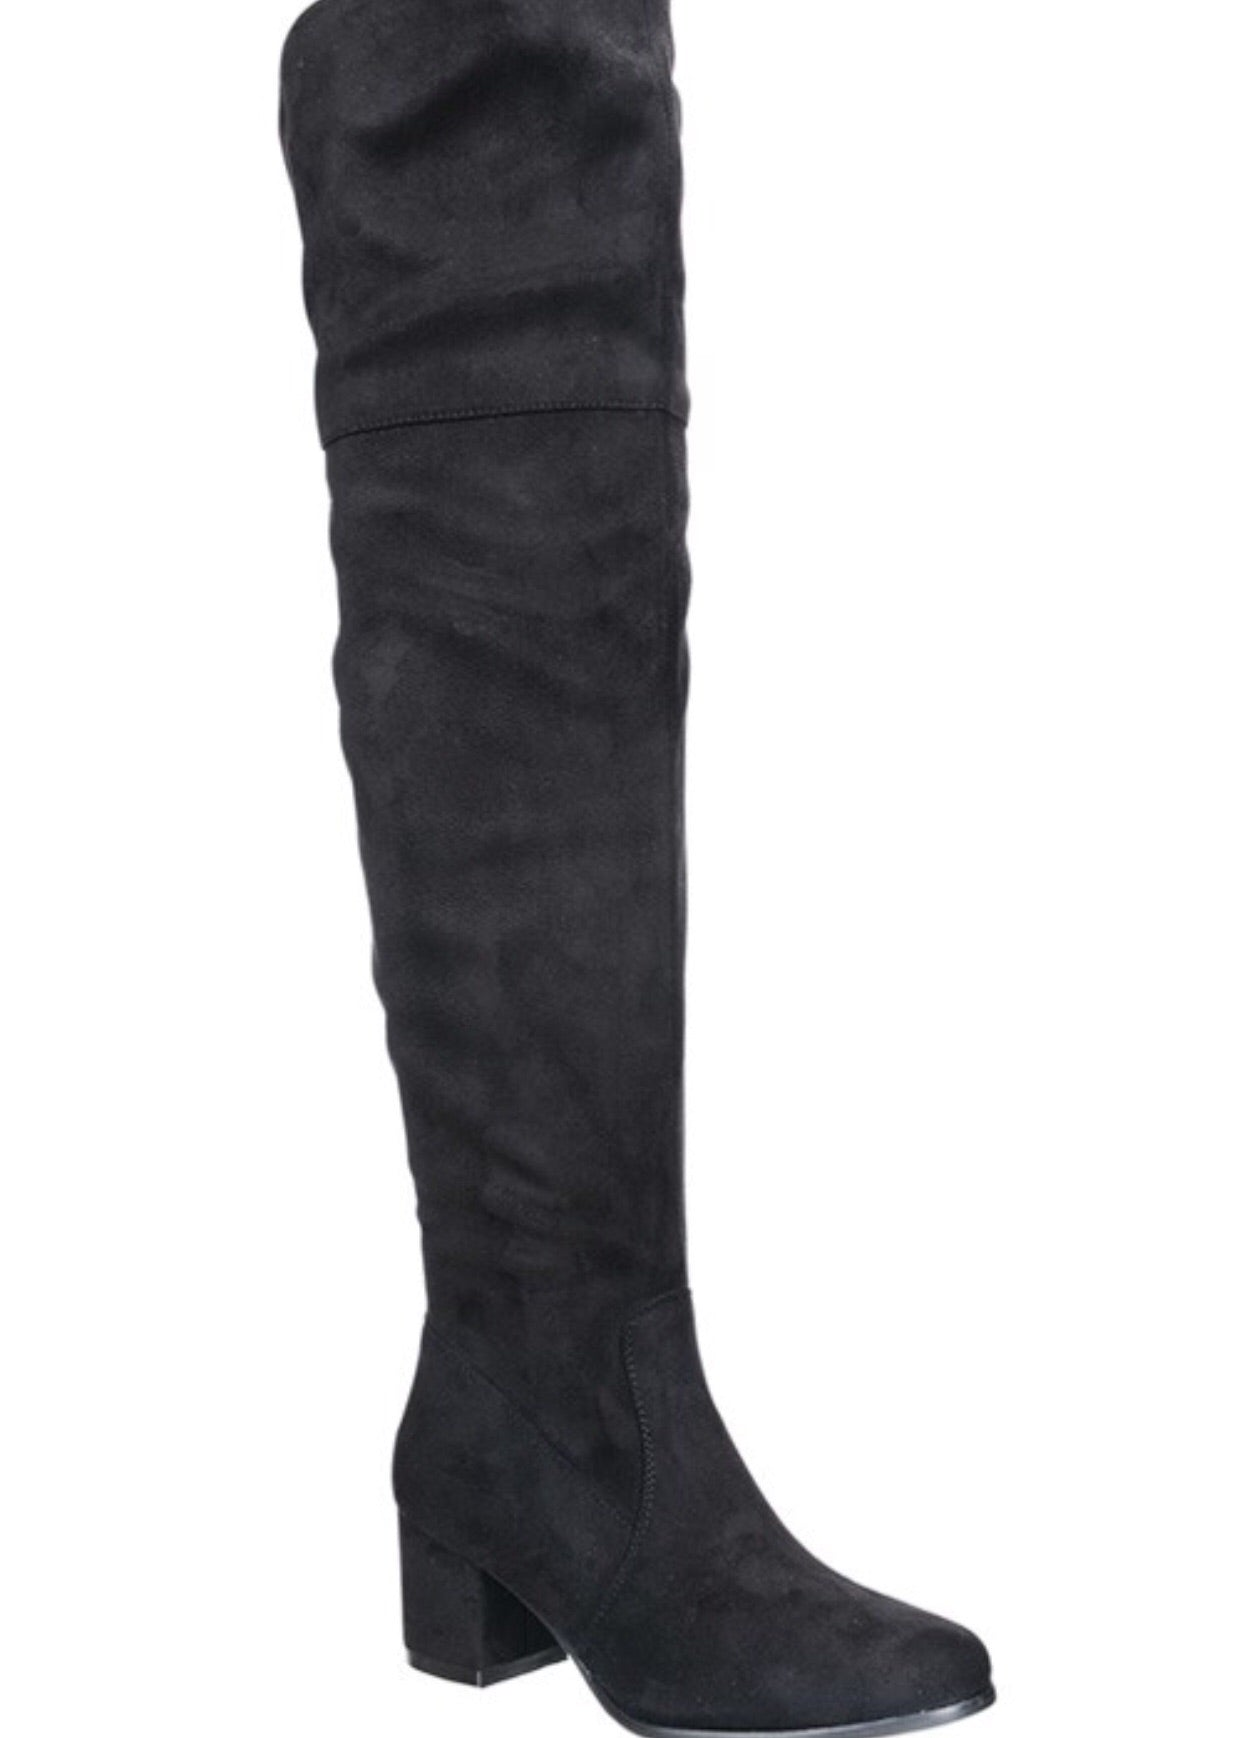 Next Level Knee High Boots